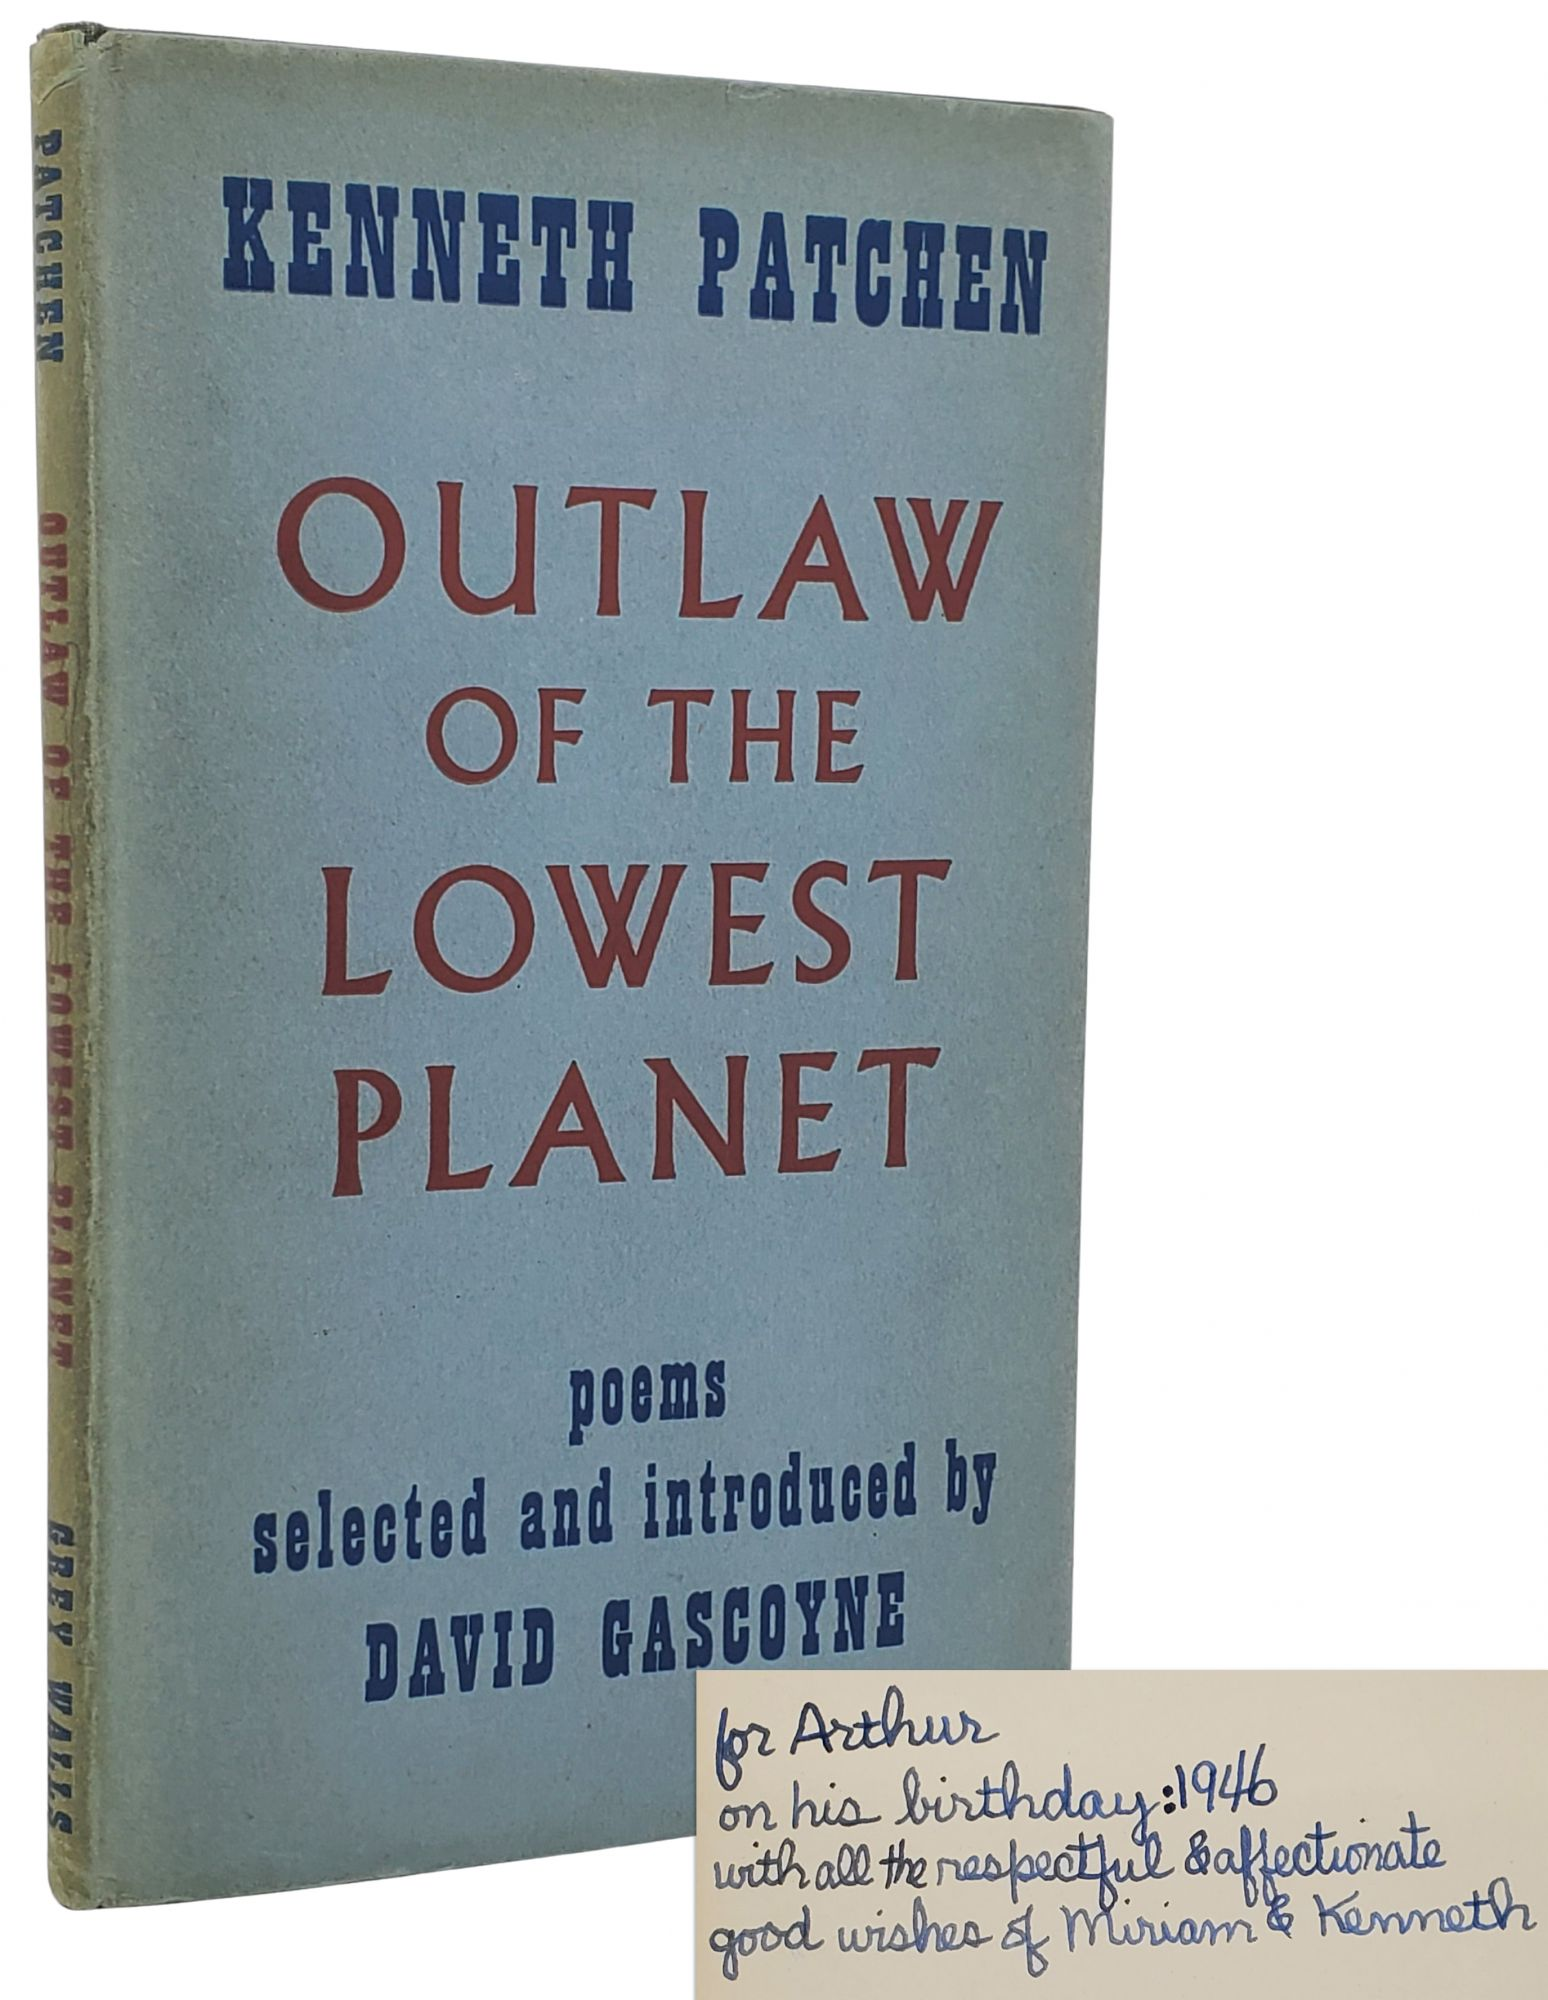 OUTLAW OF THE LOWEST PLANET [SIGNED ASSOCIATION COPY]. Kenneth Patchen.